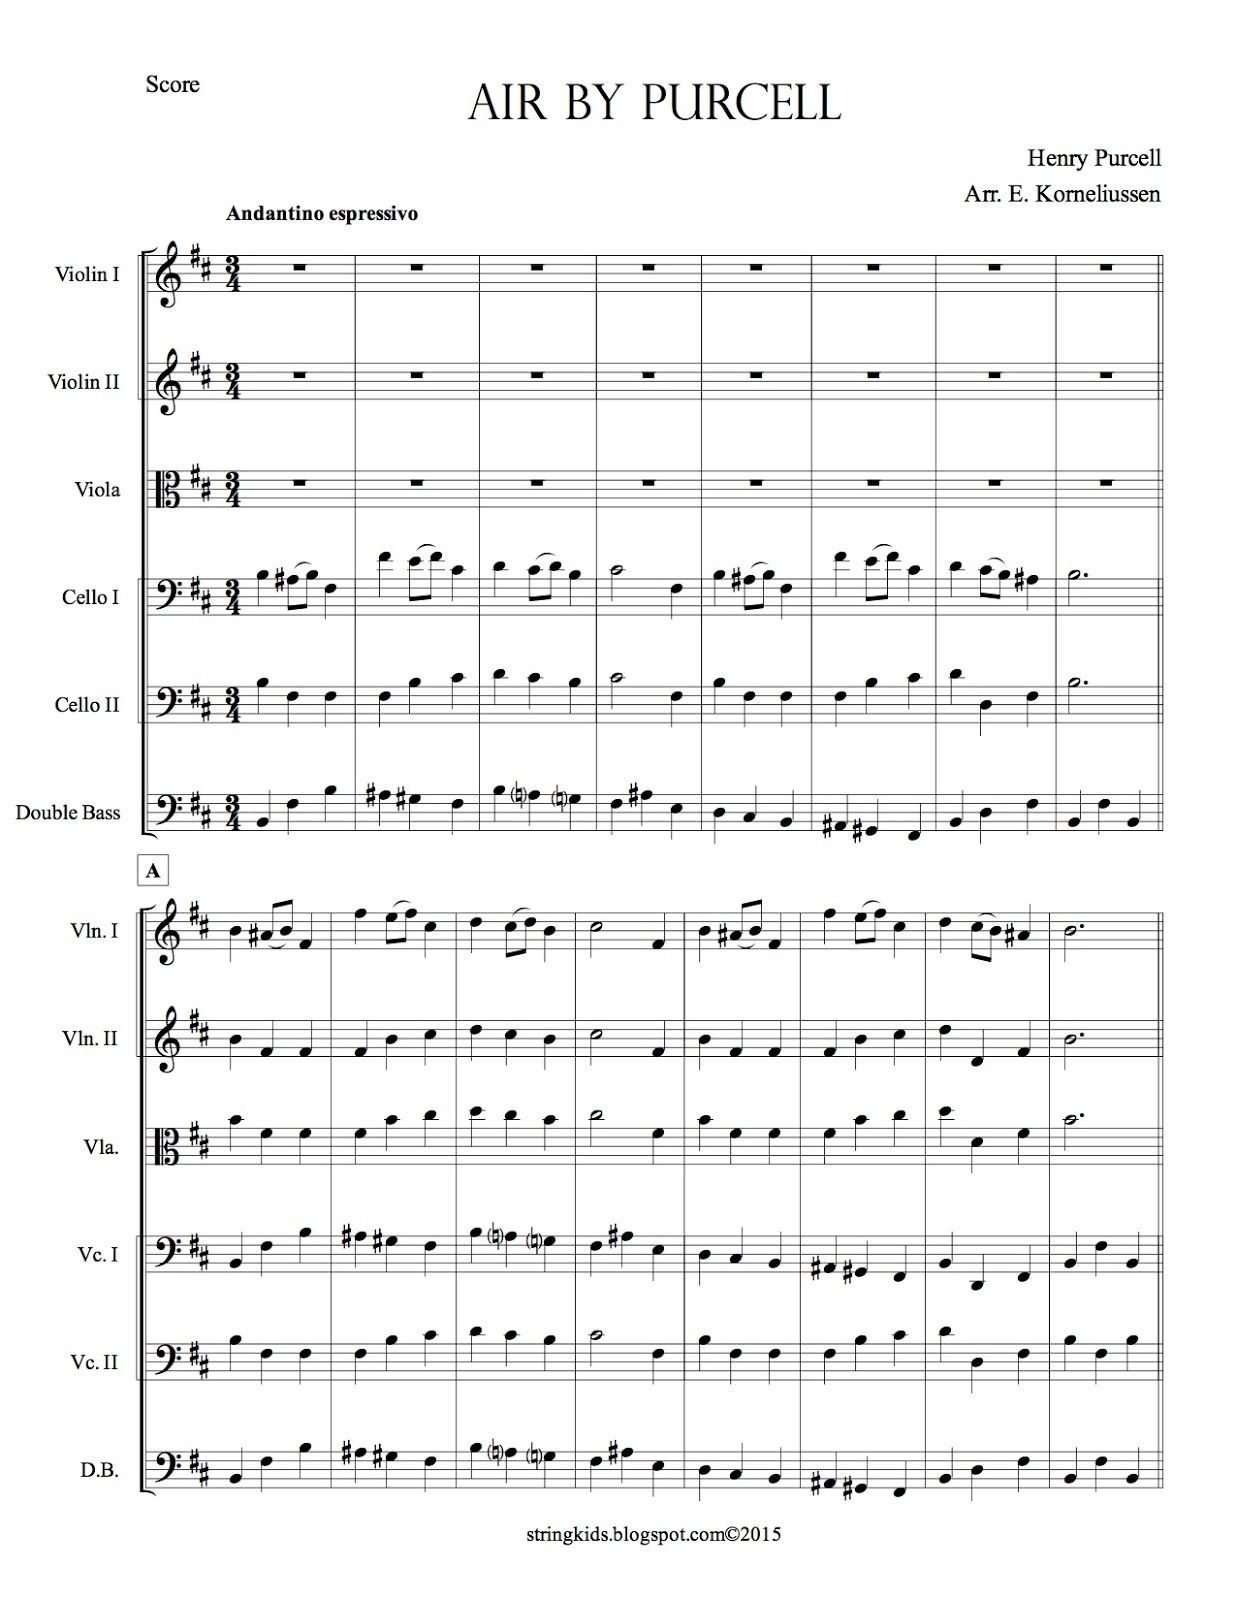 Free Sheet Music, Arrangements, Resources For String Players And - Airplanes Piano Sheet Music Free Printable